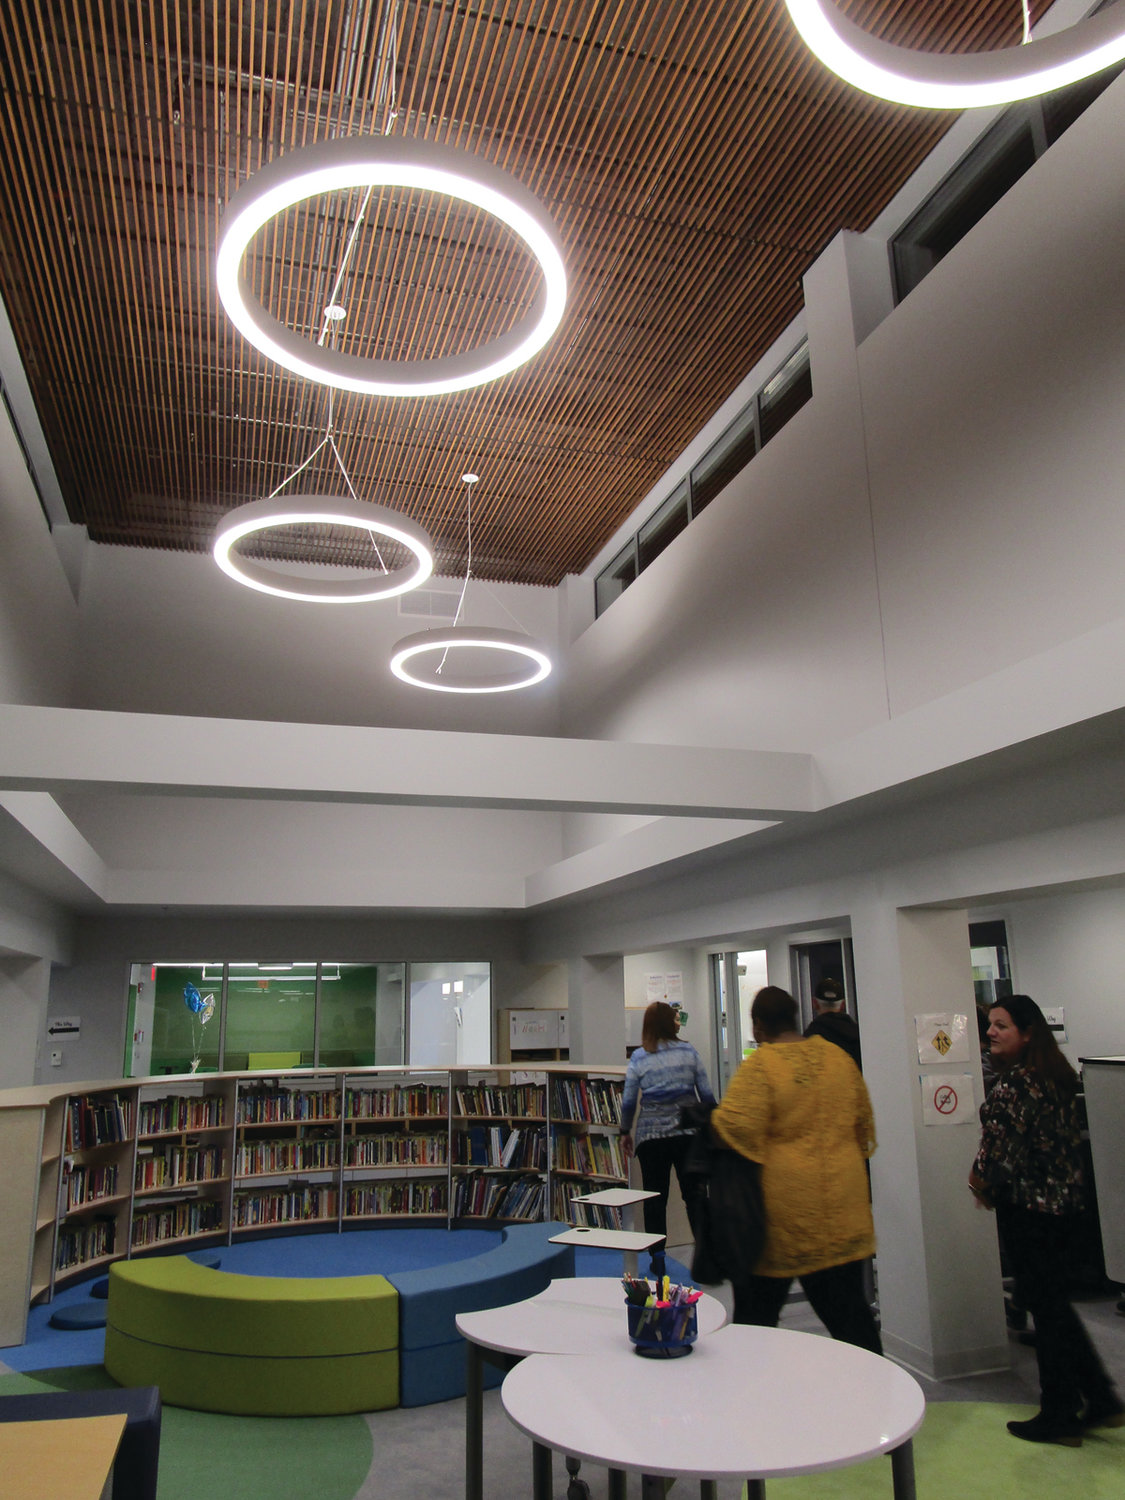 OPEN SPACES: The renovated Learning Community wing  at Eden Park Elementary School features open, bright spaces.